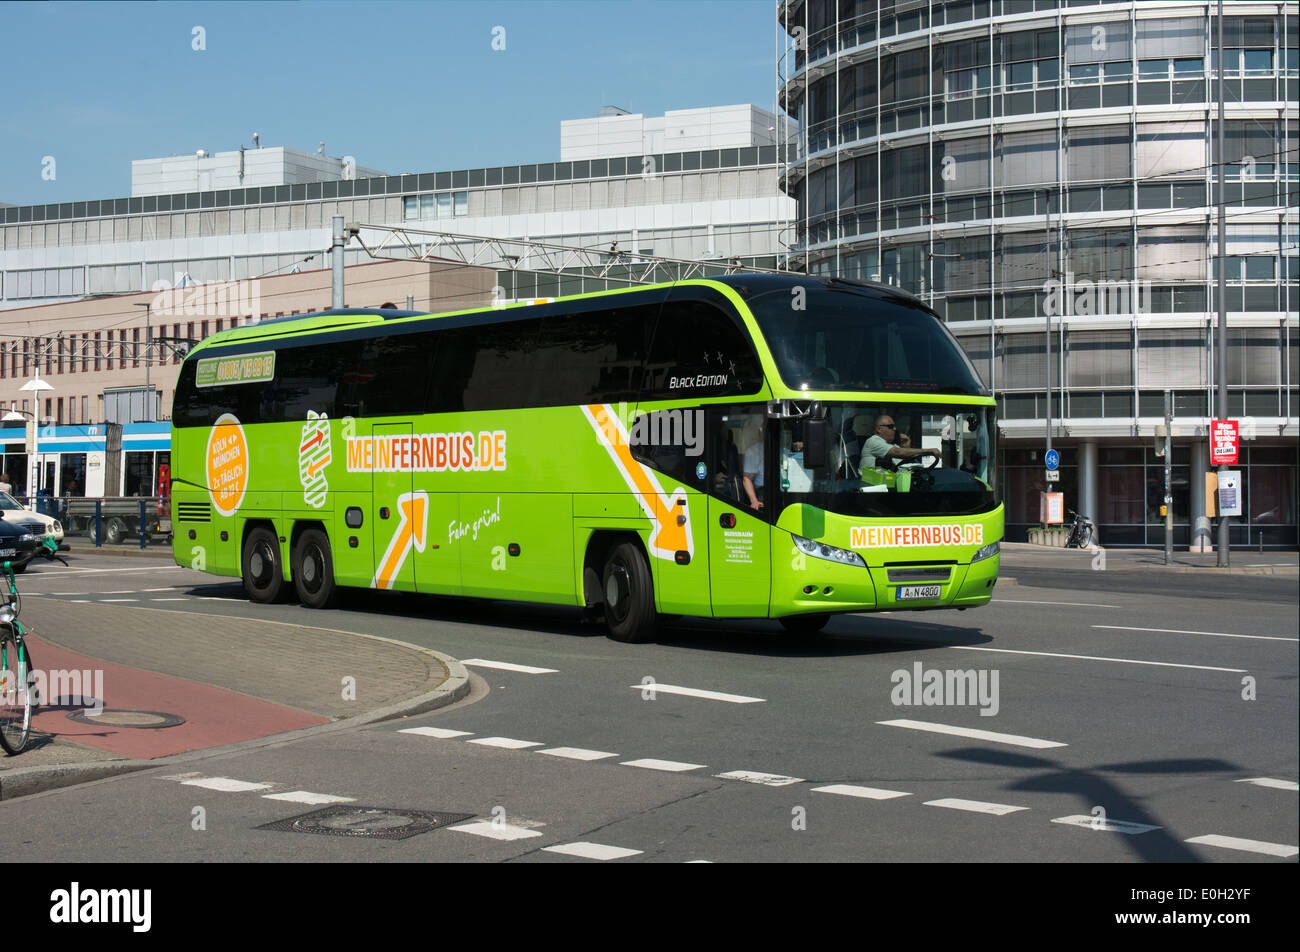 MeinFernbus.com is one of a number of low cost long distance coach franchises that have appeared in Germany recently. - Stock Image